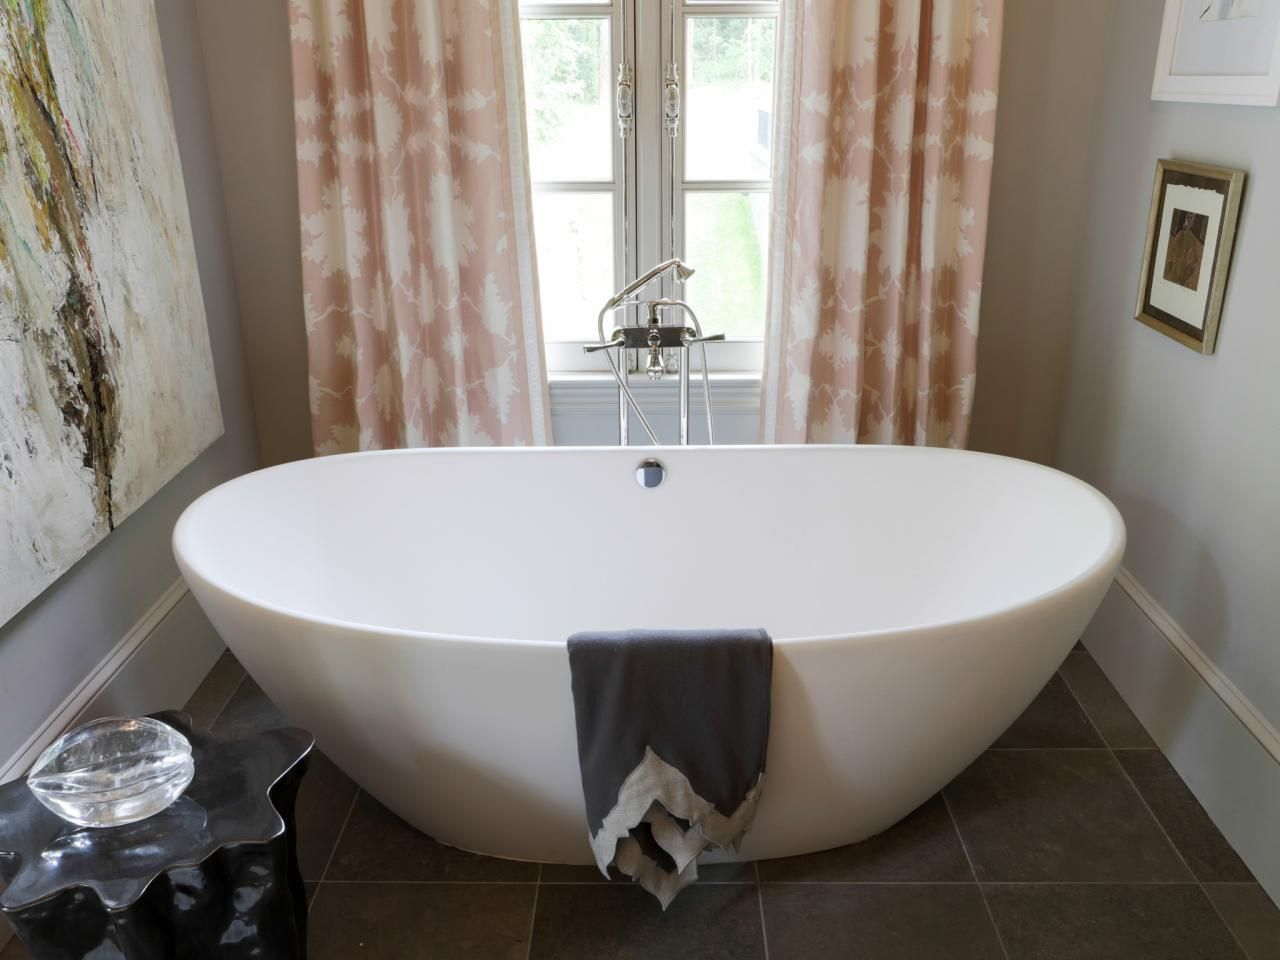 Pictures of Beautiful Luxury Bathtubs - Ideas & Inspiration | Master ...